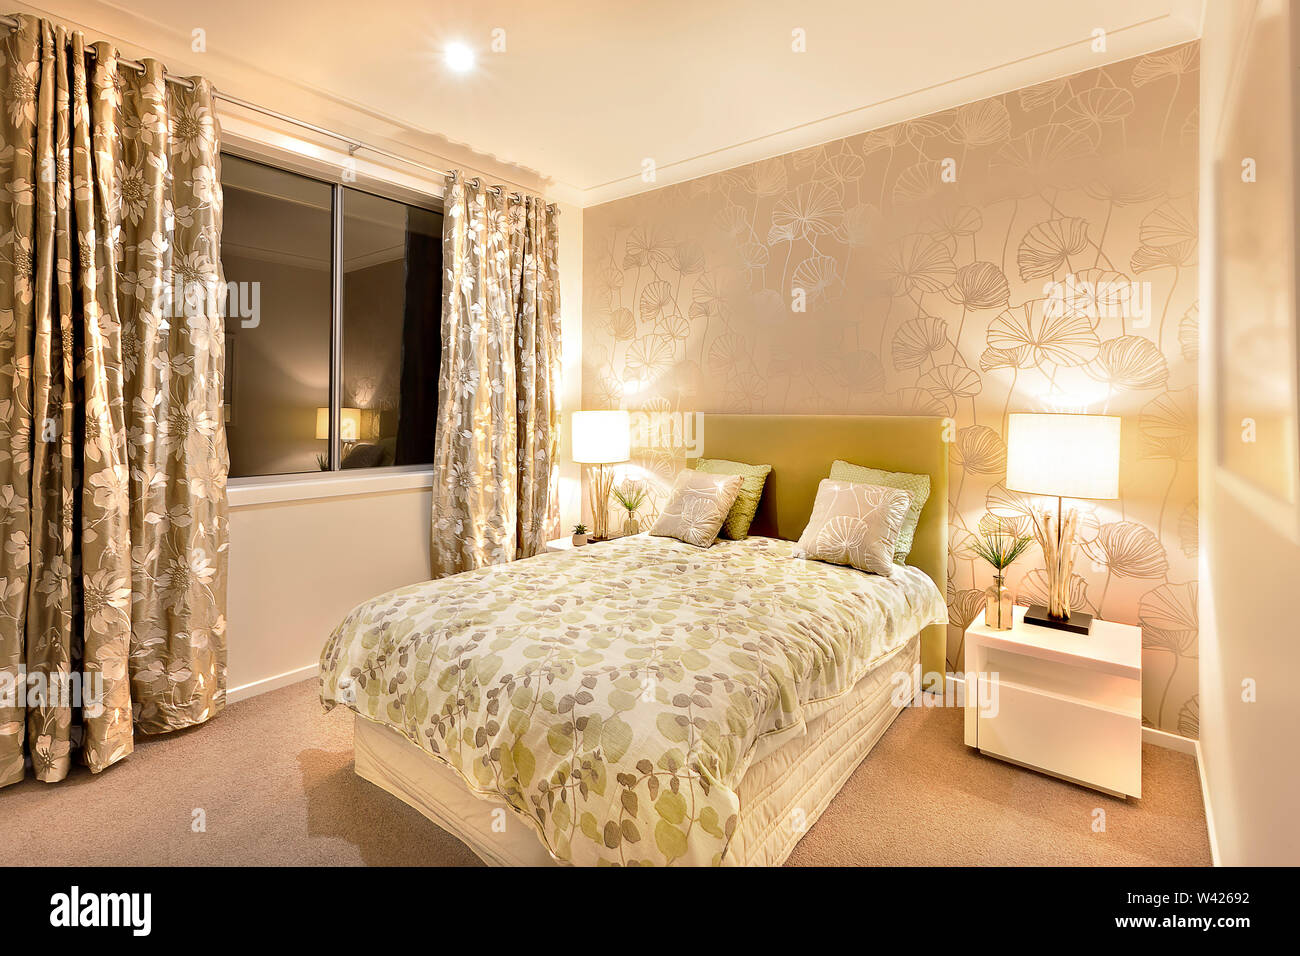 Beautiful Bedroom In Luxury Hotel Or House Illuminated Well With Two Table Lamps Made By Wooden On The White Table The Bed Is Wide Huge And Well Pre Stock Photo Alamy